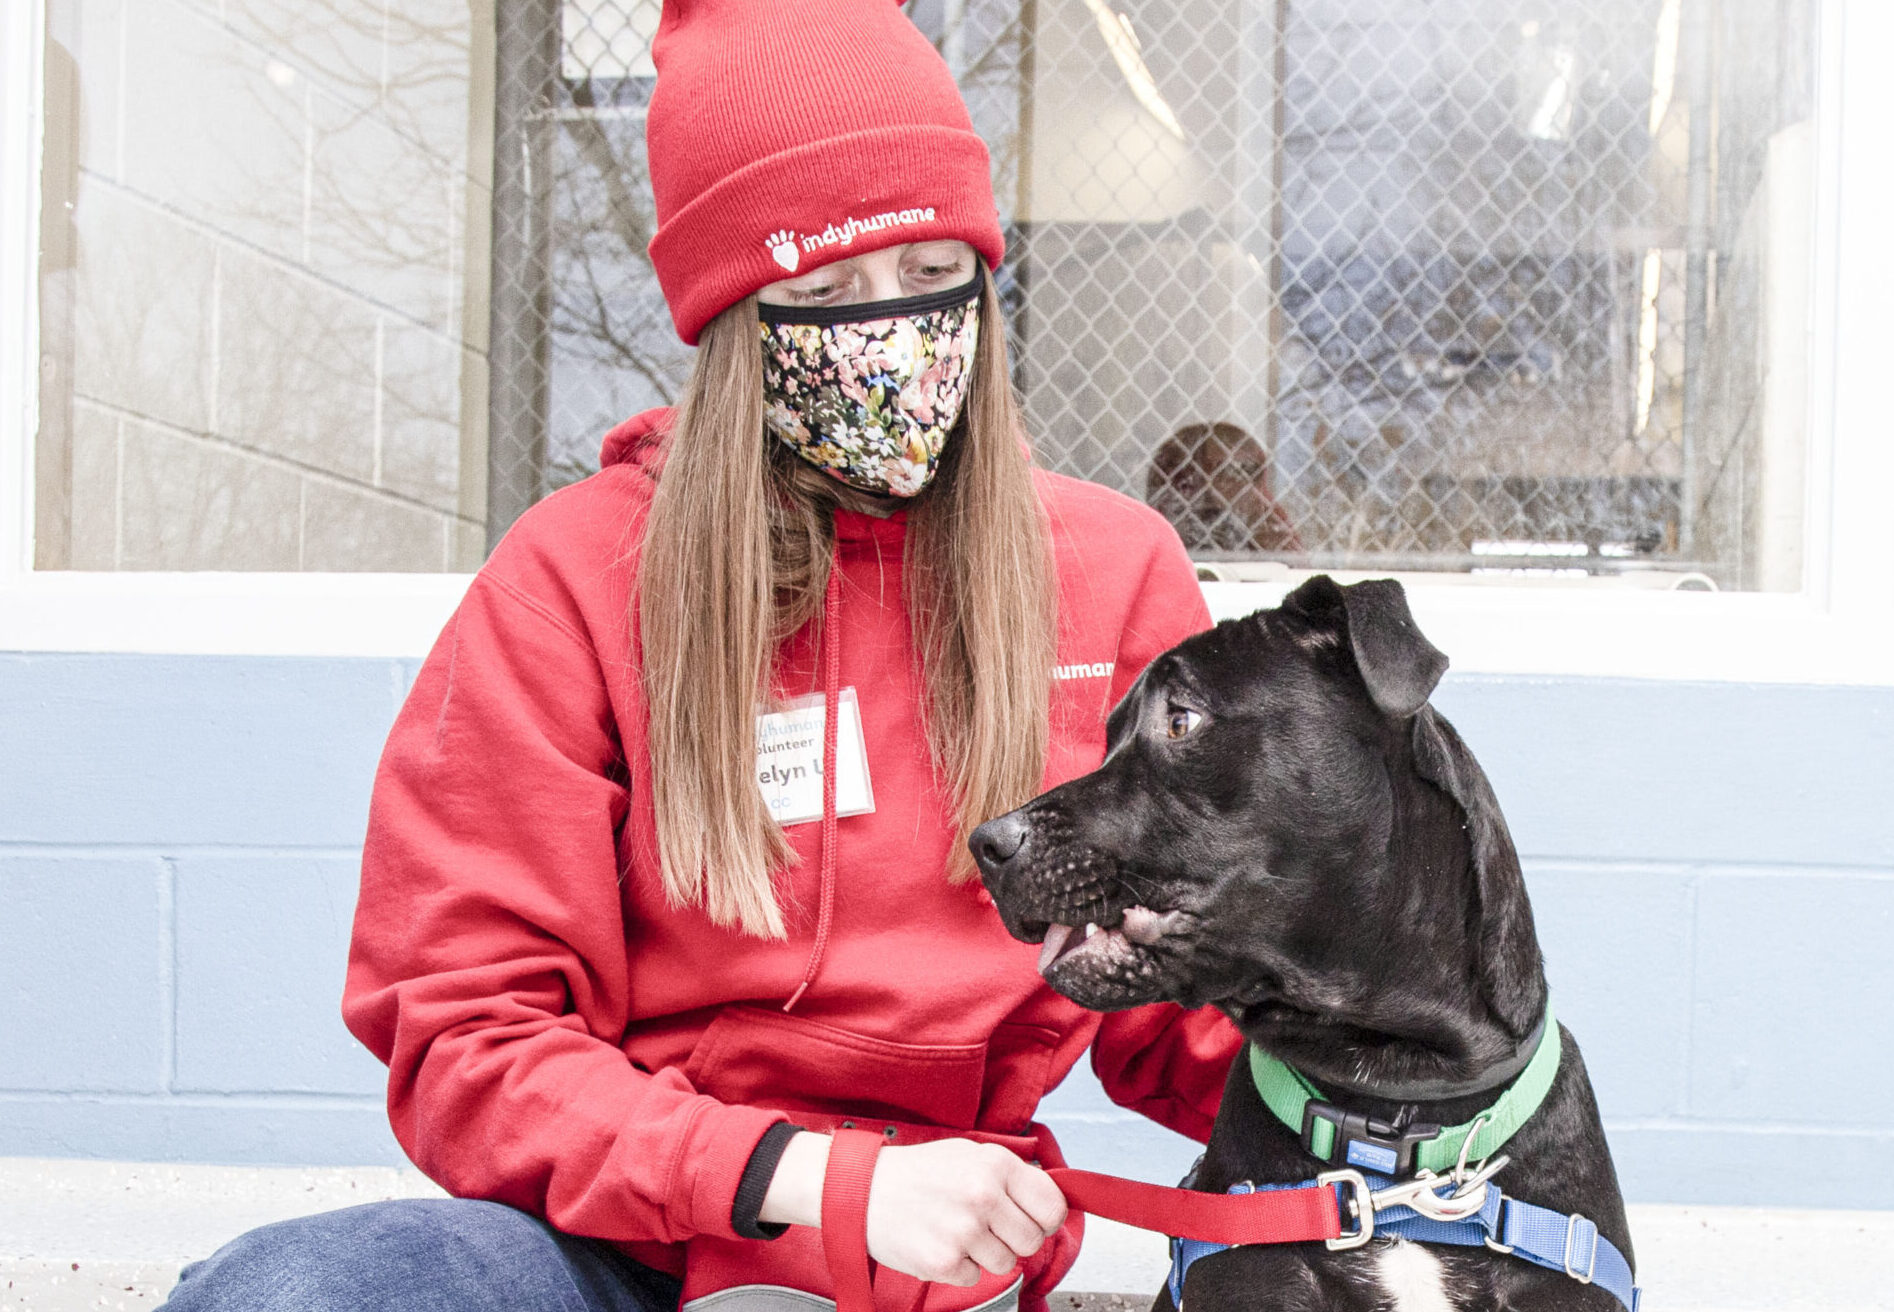 A girl in a red suit with a rad hat sitting outside with a black dog looking to the right